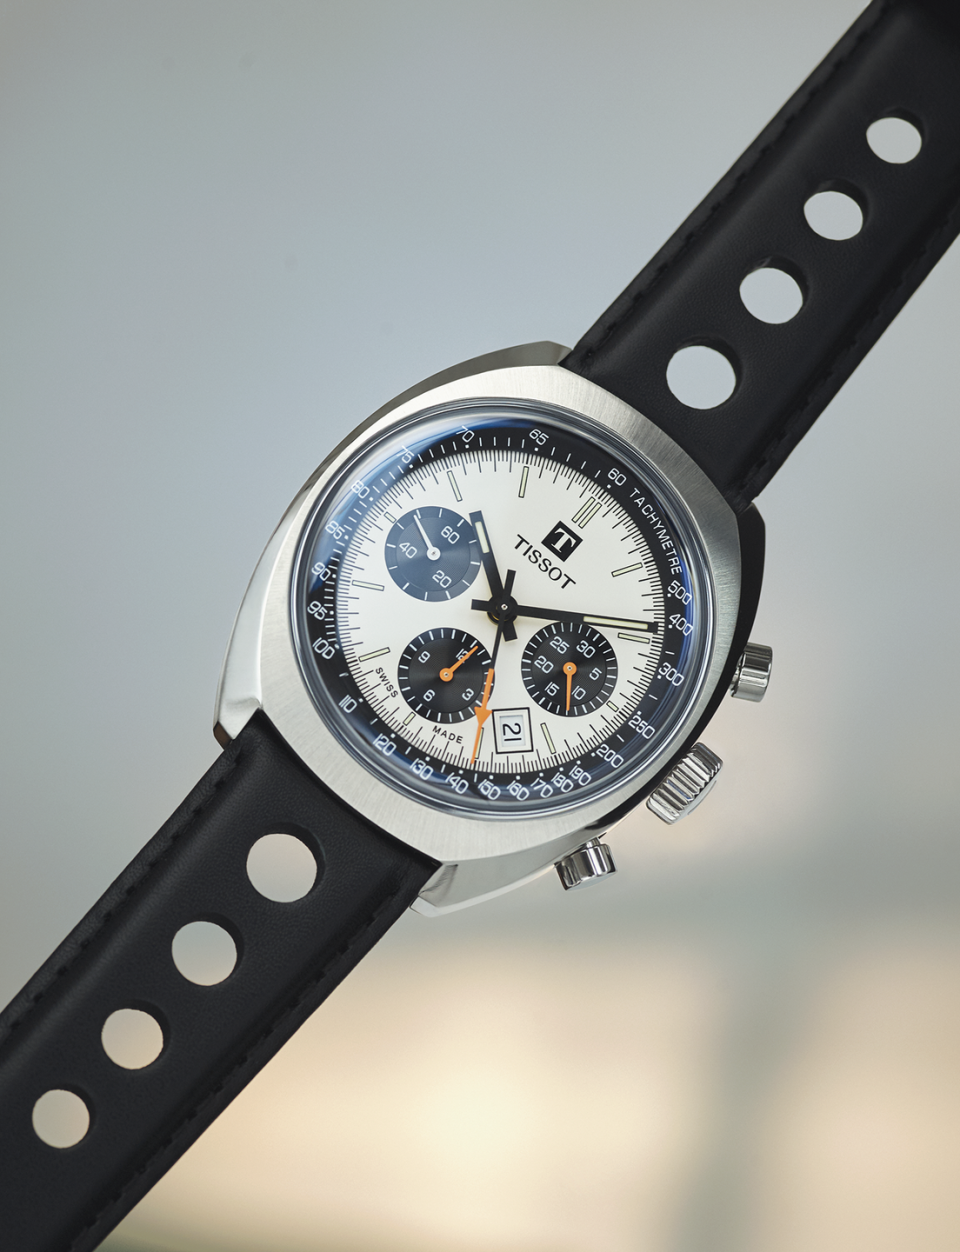 "<p>Heritage 1973 Chronograph</p><p><a class=""link rapid-noclick-resp"" href=""https://go.redirectingat.com?id=127X1599956&url=https%3A%2F%2Fwww.ernestjones.co.uk%2Fwebstore%2Fl%2Fsearch%2Fbrand%257Ctissot%2Fstock%2Bposition%257Cin%2Bstock%2F&sref=https%3A%2F%2Fwww.esquire.com%2Fuk%2Fwatches%2Fg25973970%2Fbest-mens-watches%2F"" rel=""nofollow noopener"" target=""_blank"" data-ylk=""slk:SHOP"">SHOP</a><br>The Swiss brand first engaged with motor racing during the Fifties, finding its greatest success in the Seventies sponsoring entrants at the Le Mans 24-hour endurance races and claiming a podium first place with French car builder Alpine at the Monte Carlo Rally World Championship in 1973. This year's Heritage release revisits Tissot's original mechanical racing watch, the Navigator, fairly faithfully while adding new tweaks. Inside the polished steel 43mm case, the three-dial panda layout is highlighted with green Super-LumiNova indices and sporty little neon-orange counters, the date window is repositioned between 4 and 5 o'clock, and it's all mounted on a period-perfect black perforated leather racing strap. Limited to an appropriate 1,973 pieces, the race is on to catch up with one. </p><p>£1,615; <a href=""https://www.tissotwatches.com/"" rel=""nofollow noopener"" target=""_blank"" data-ylk=""slk:tissotwatches.com"" class=""link rapid-noclick-resp"">tissotwatches.com</a></p>"